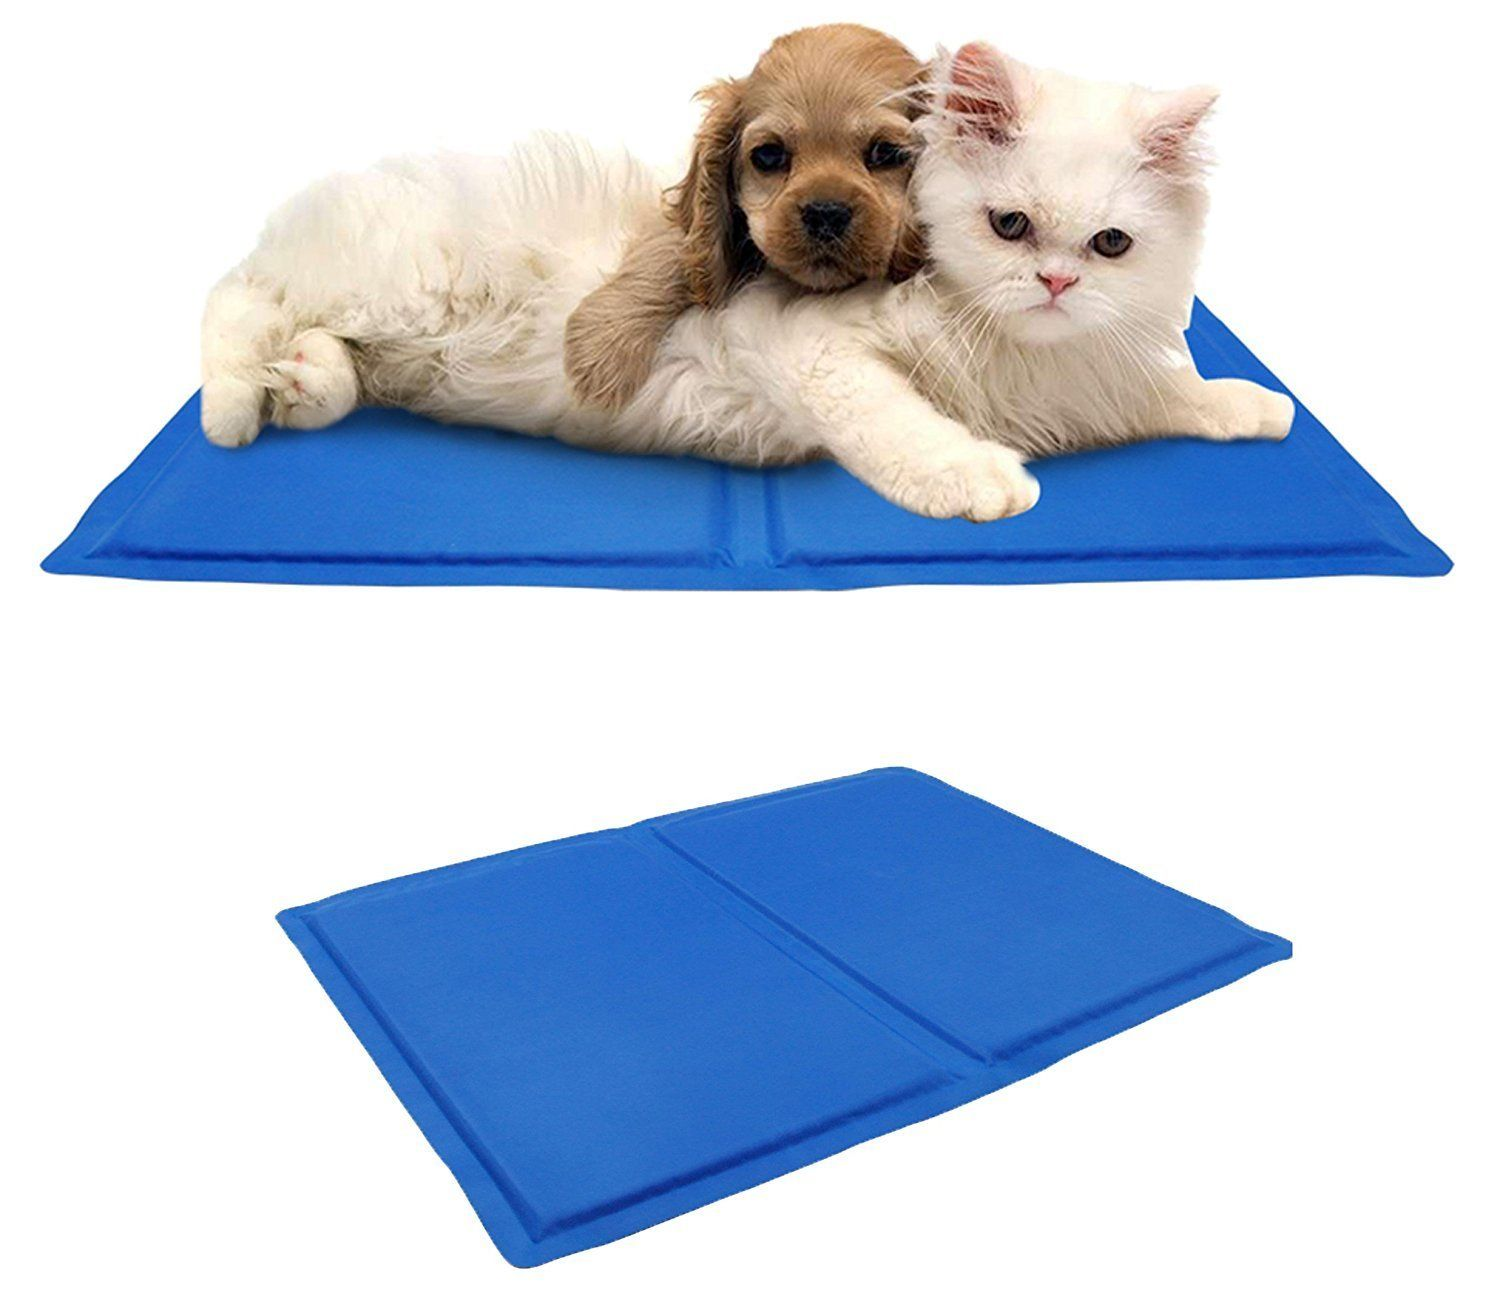 Supercope Pets Large Self Cooling Mat Cold Pad For Cats And Dogs Best For Keeping Pets Cool Perfect For Travel Floor Couch Ca Pets Pet Cooling Mat Pet Bed